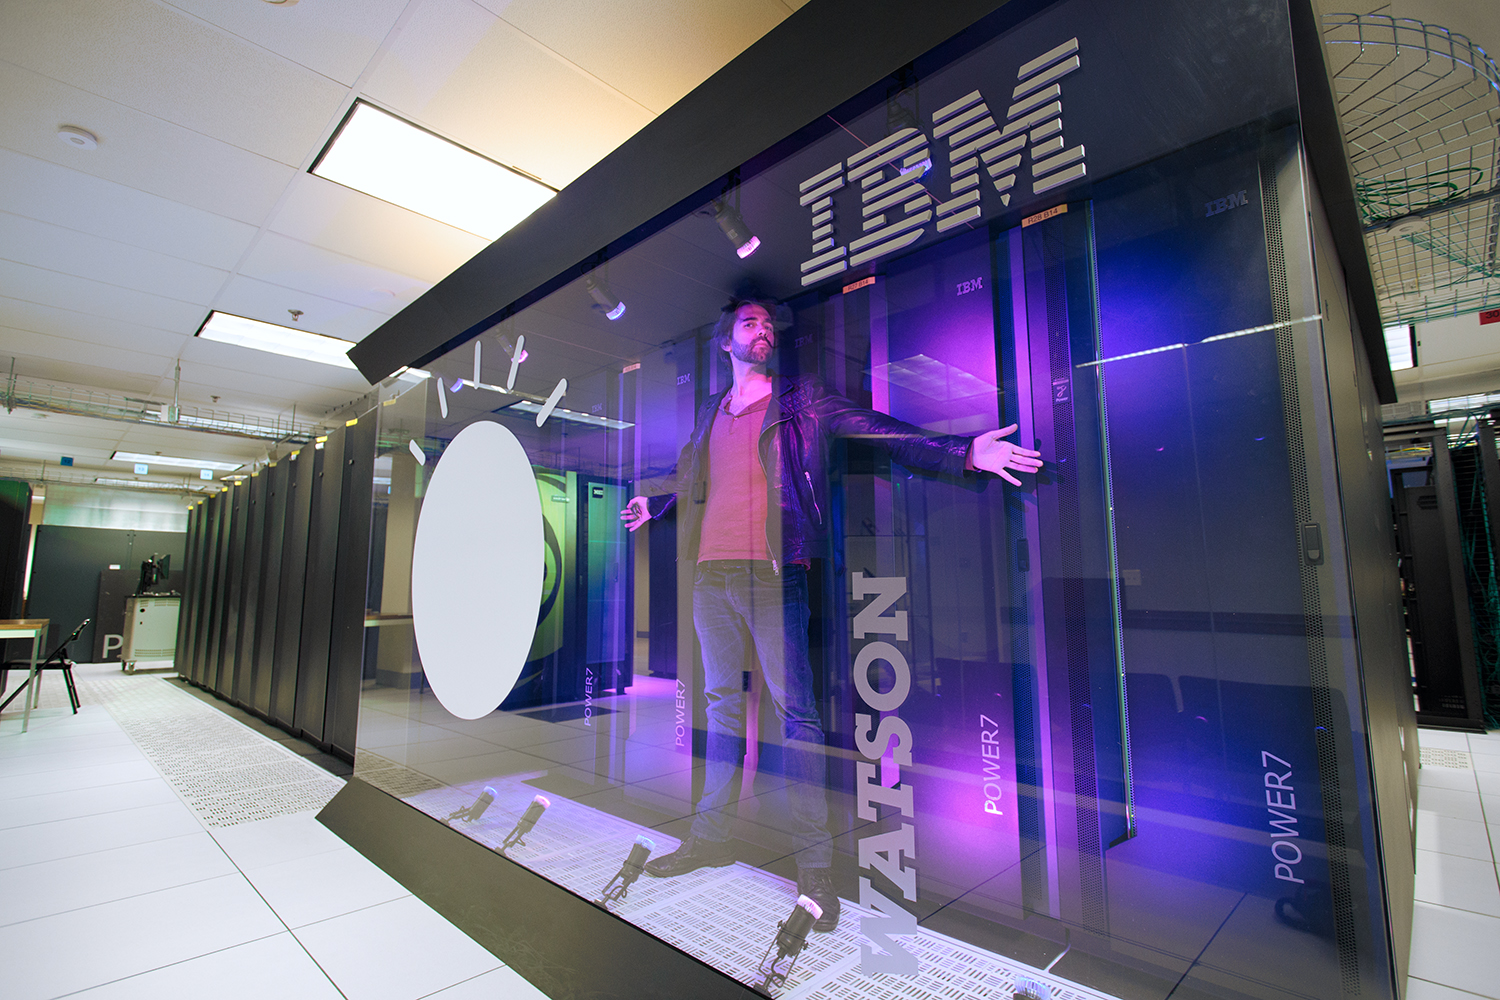 Me, standing inside IBM Watson at IBM Research in Upstate New York